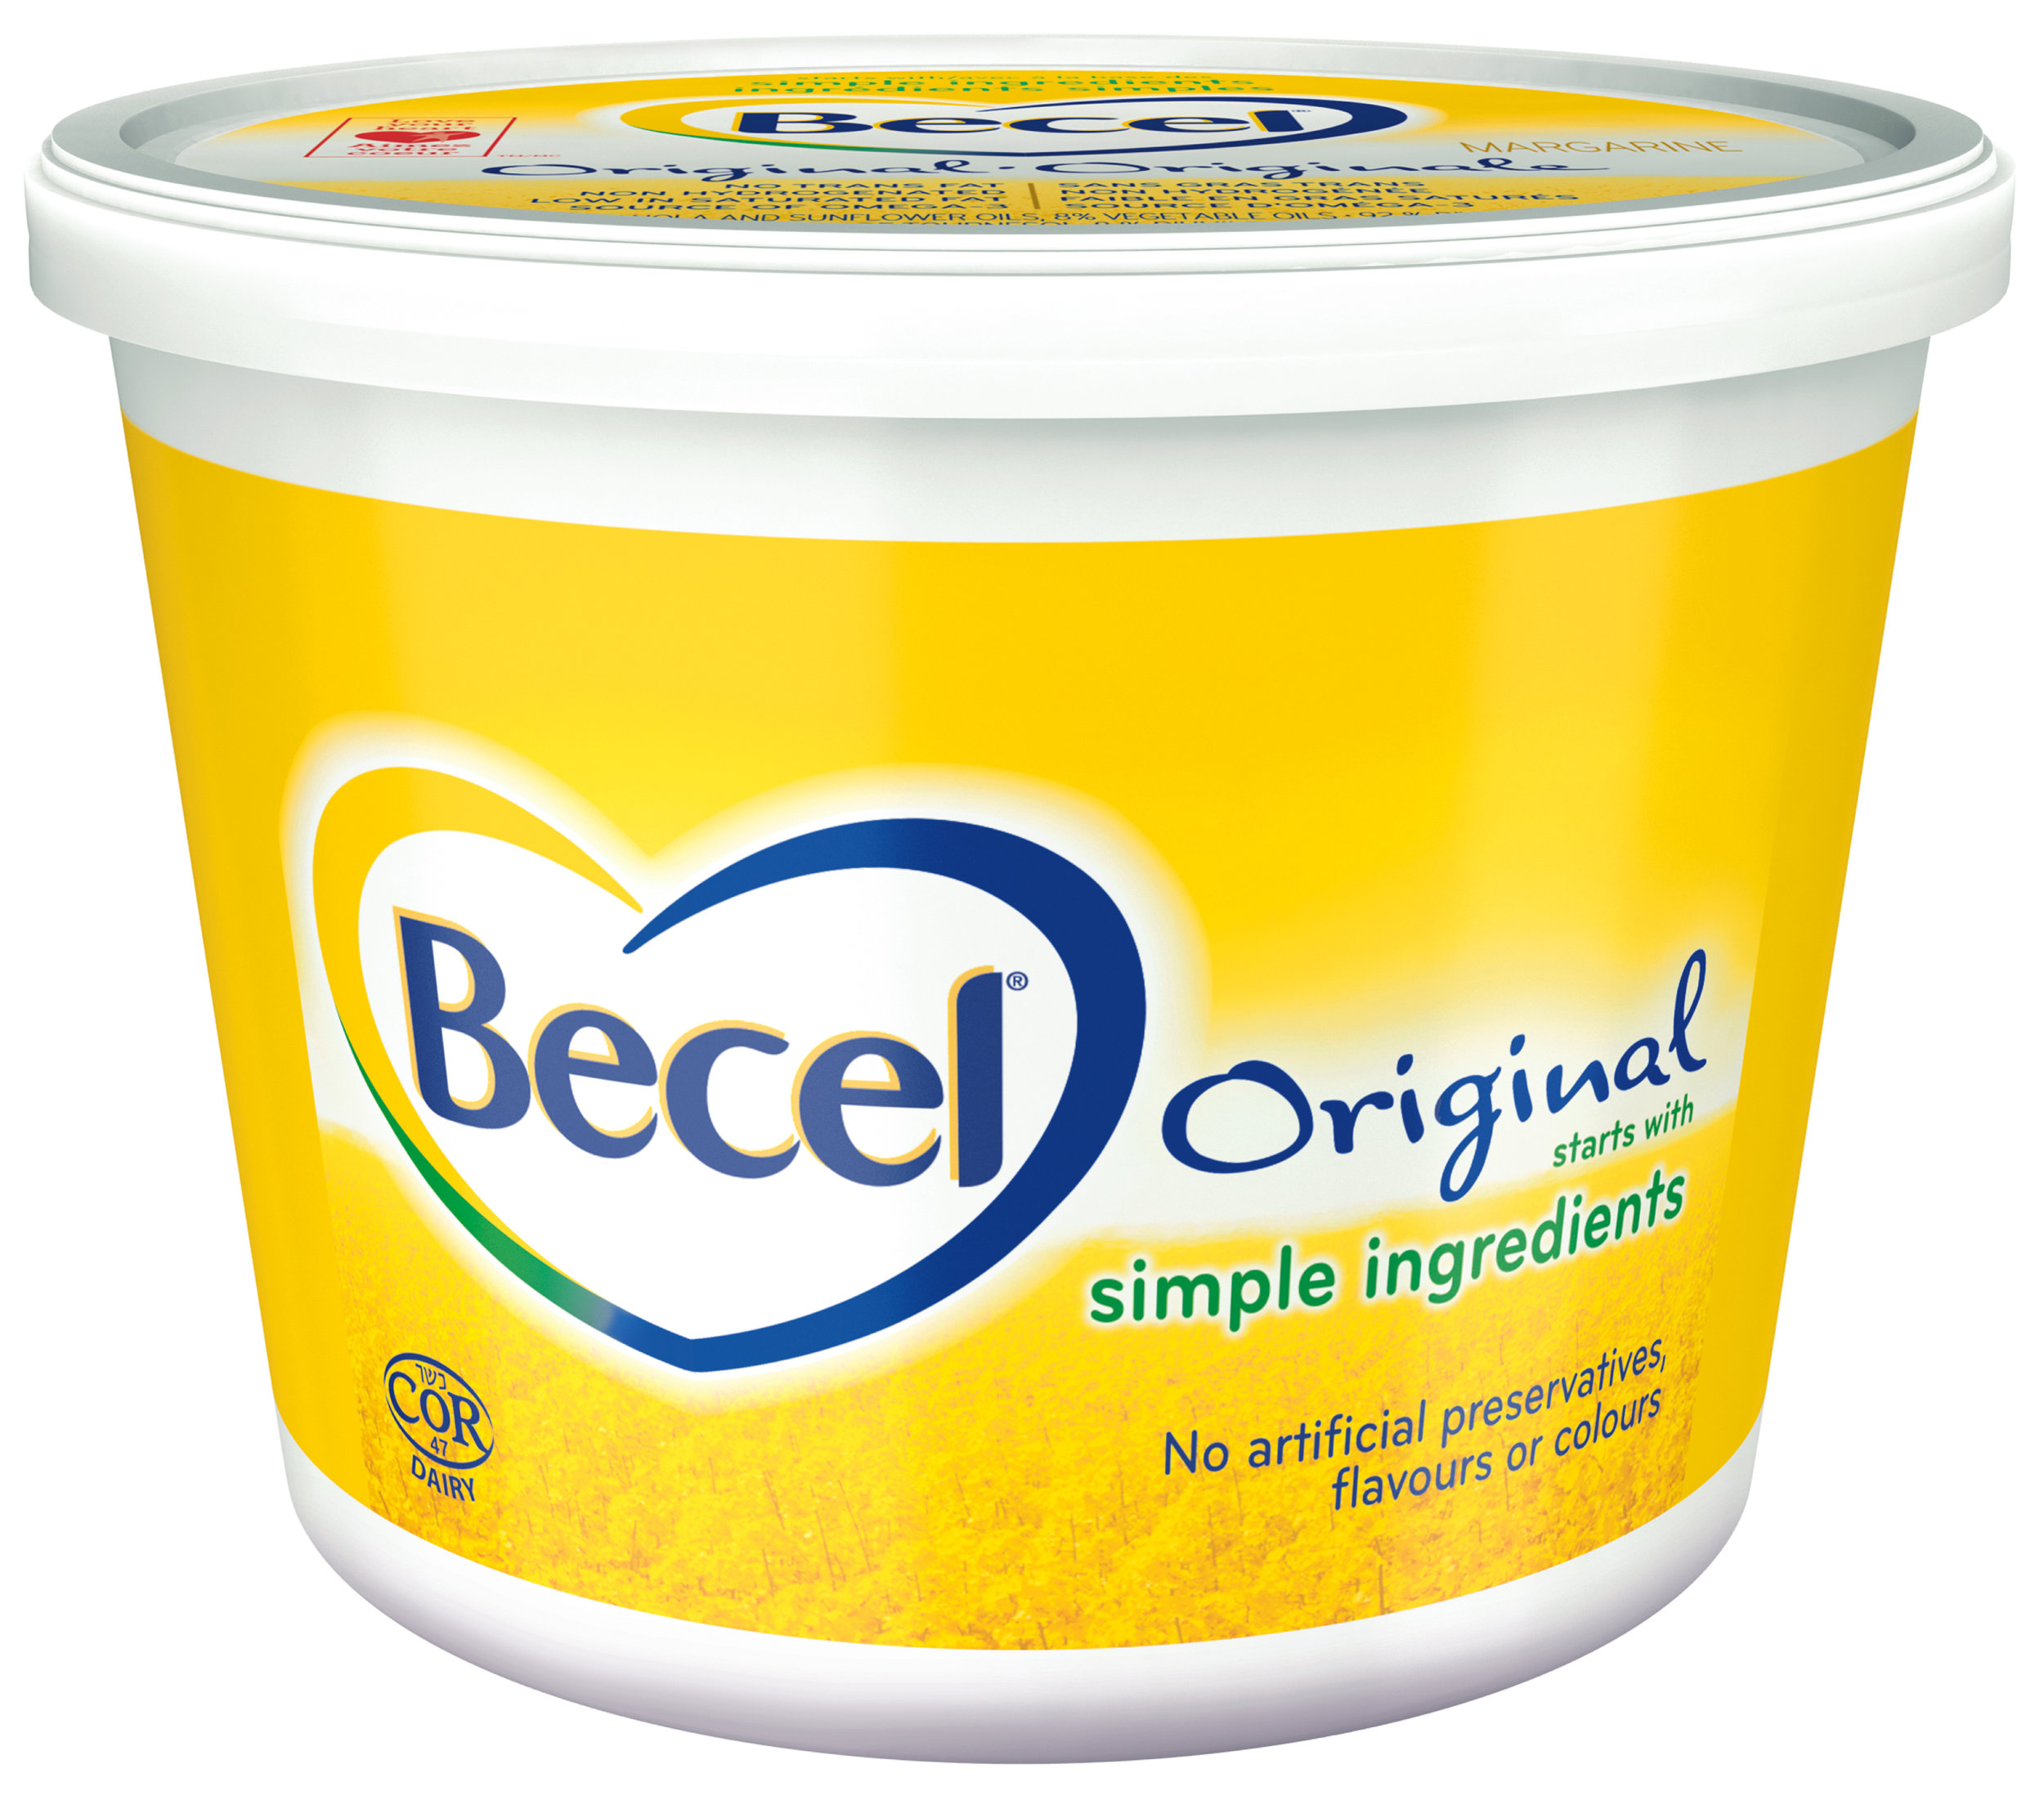 Becel® You Love With Simpler Ingredients